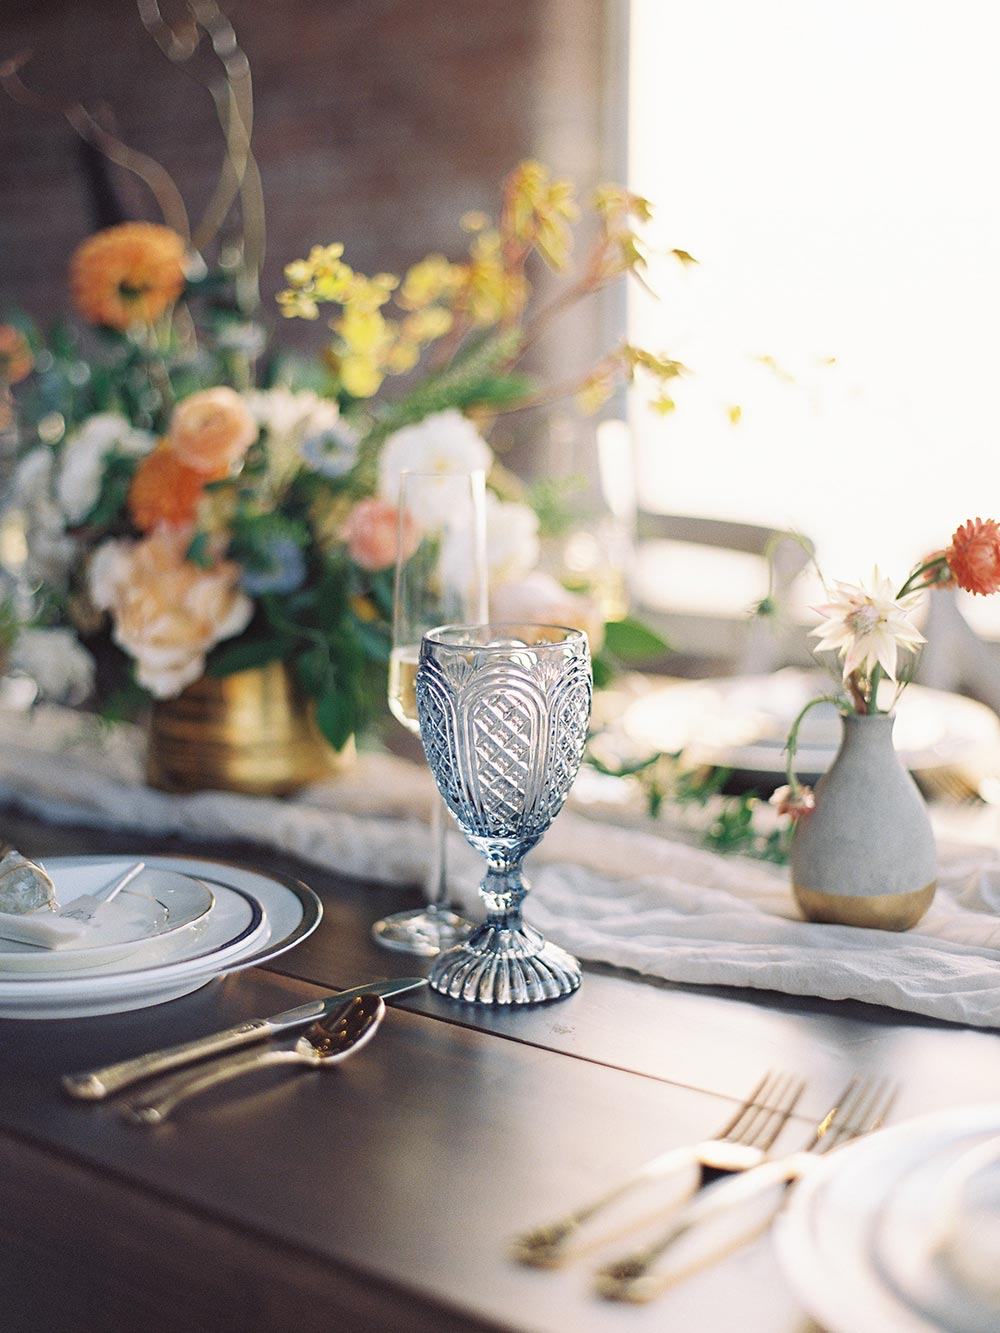 eclectic vintage tableware wedding reception